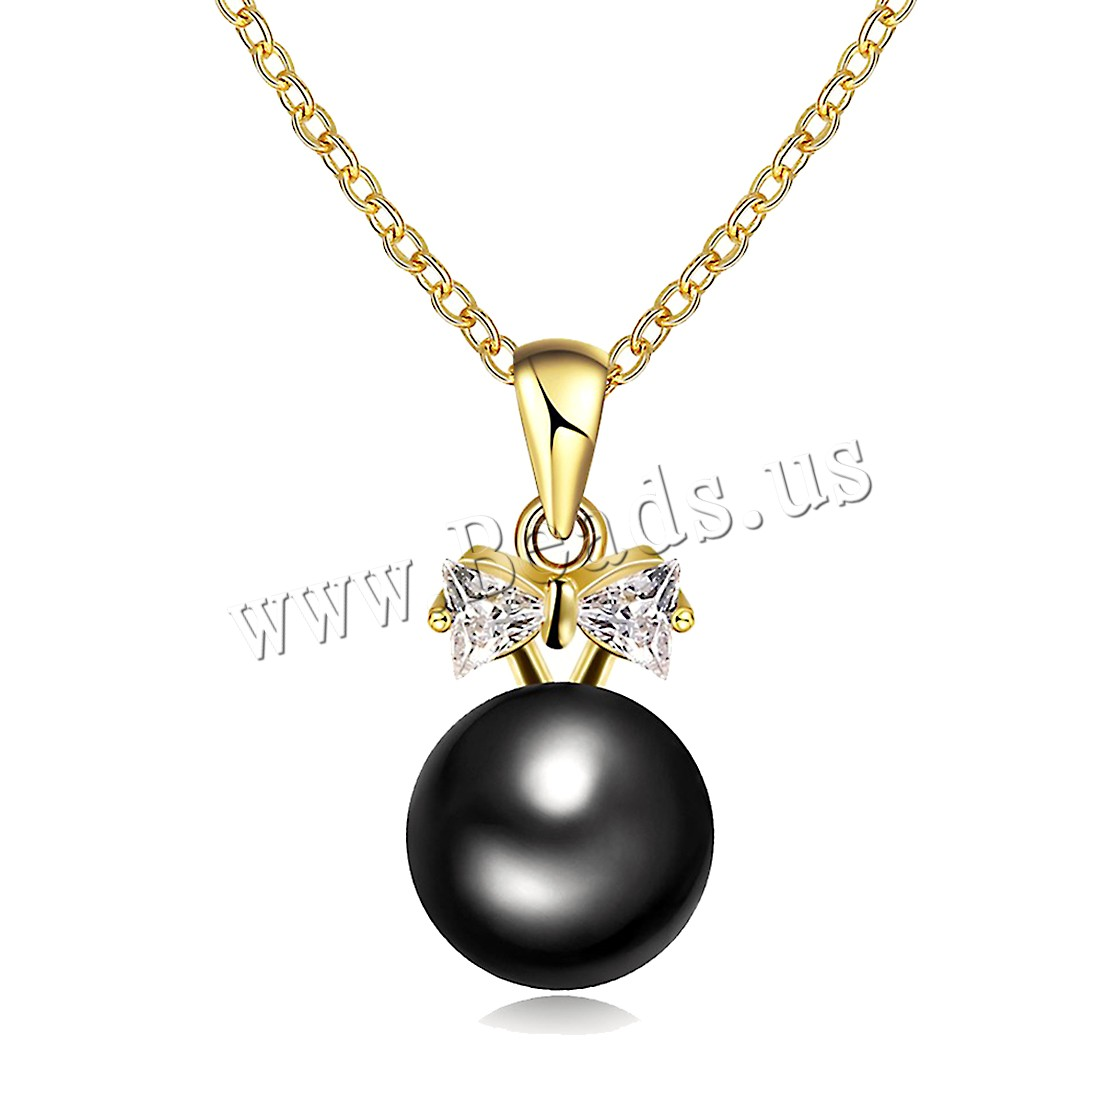 Buy Comeon® Jewelry Necklace Brass Freshwater Pearl 1.9lnch extender chain real gold plated natural & oval chain & woman & cubic zirconia nickel lead & cadmium free 9x13mm Sold Per Approx 17.7 Inch Strand